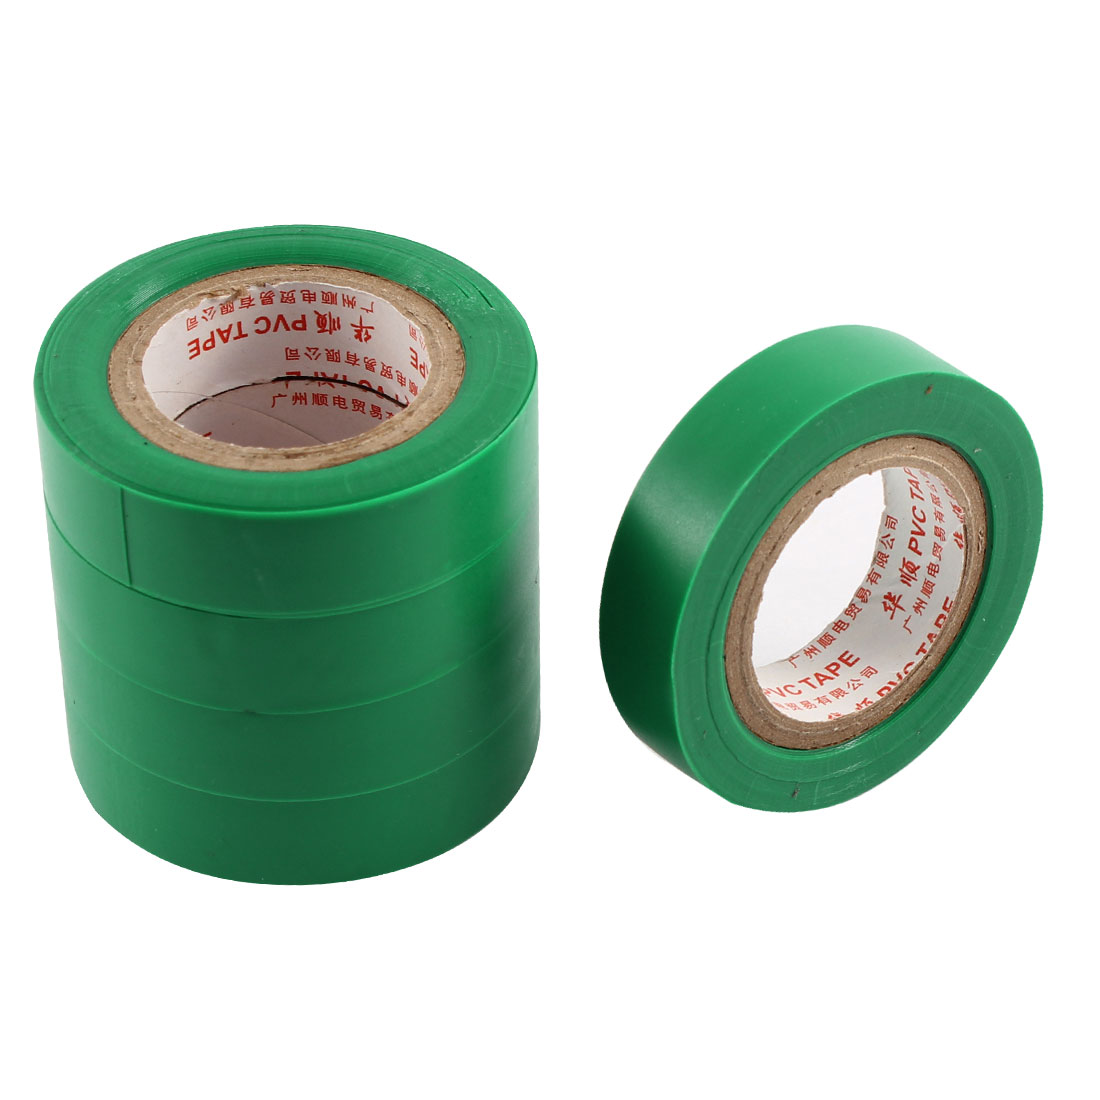 5pcs 14mm Width Green PVC Adhesive Electrical Wire Insulation Tape Roll